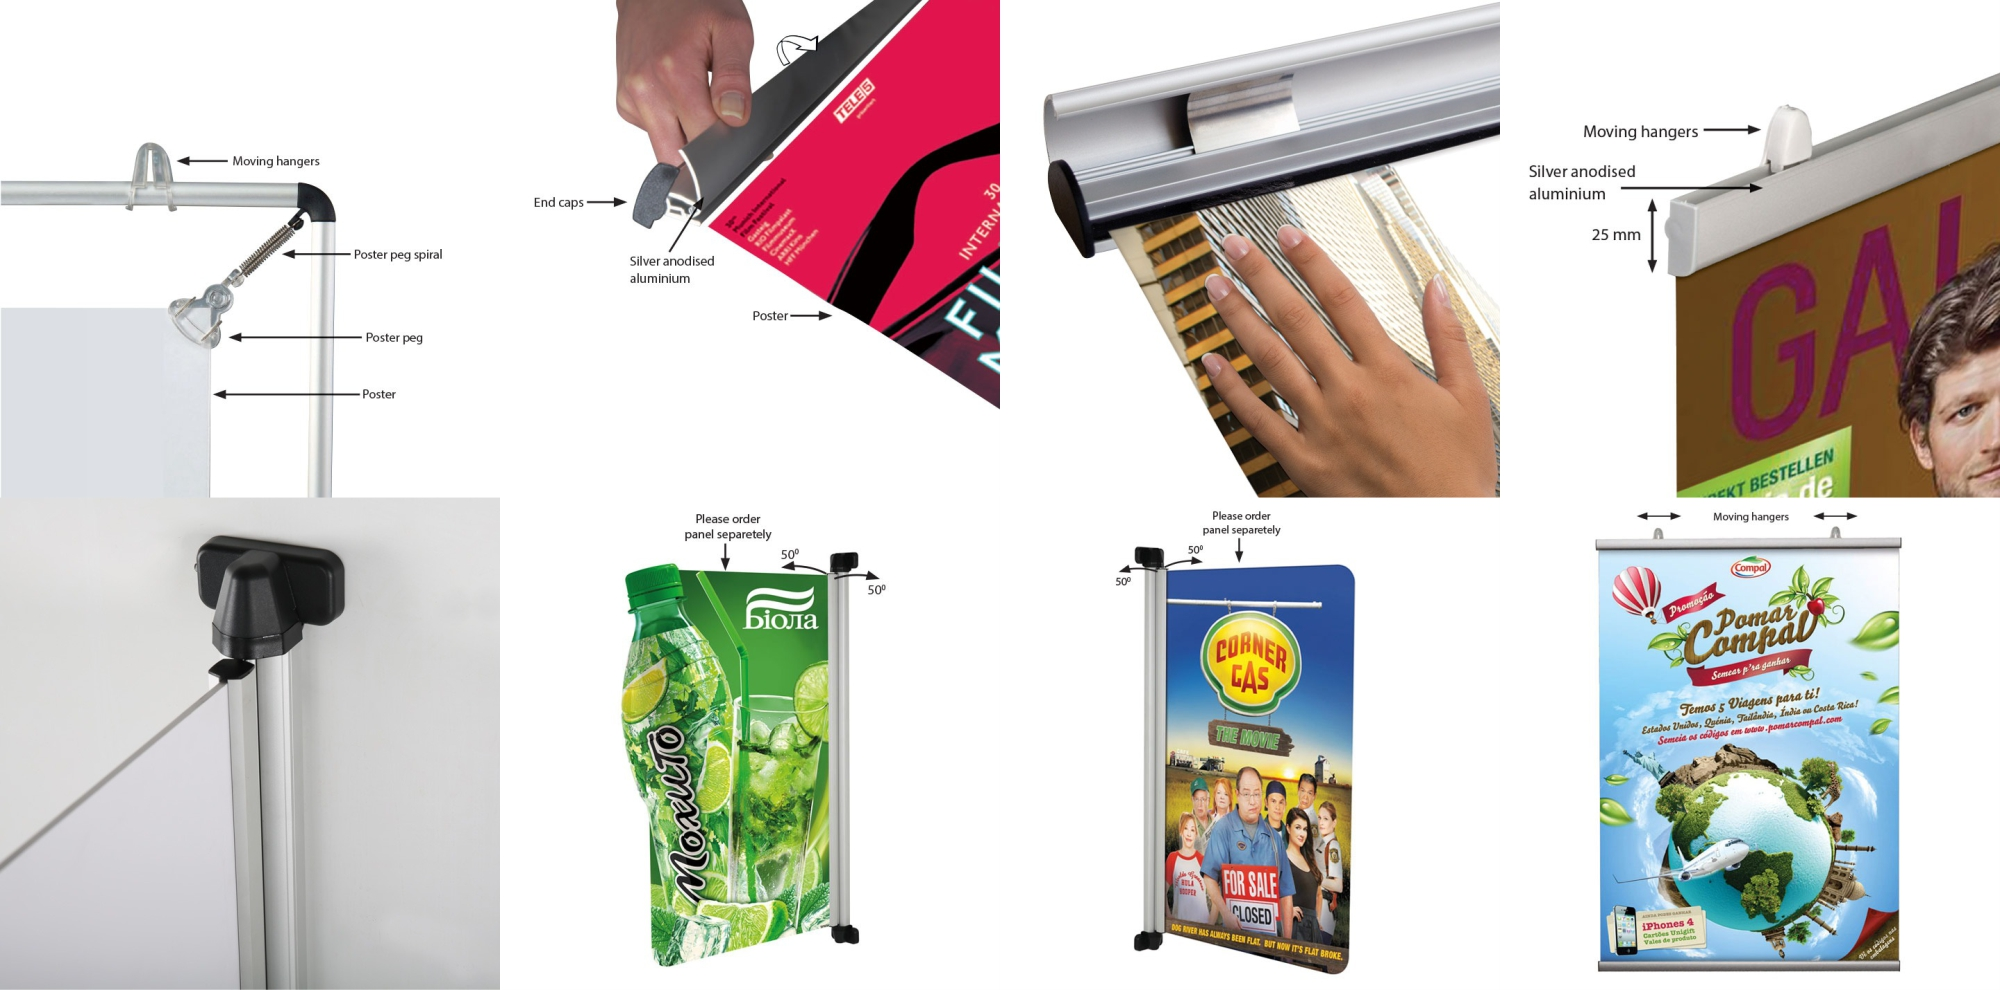 Poster Holders<br /><a href='#parallax-expo-4' class='btn btn-skin btn-slide' id='btn-scroll'>Learn More</a>